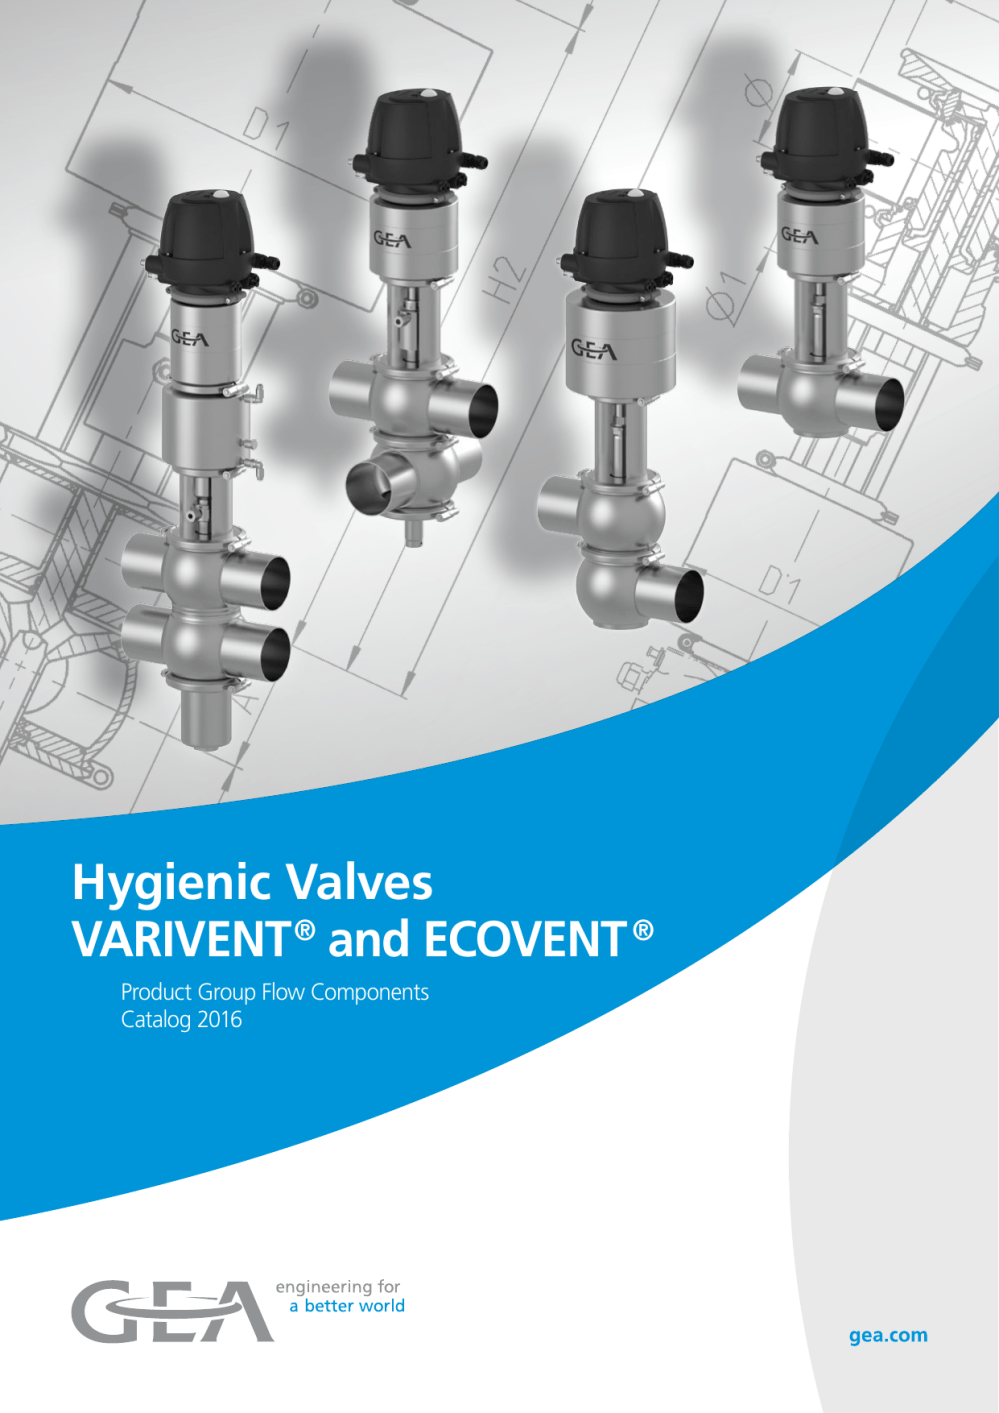 medium resolution of hygienic valves varivent and ecovent